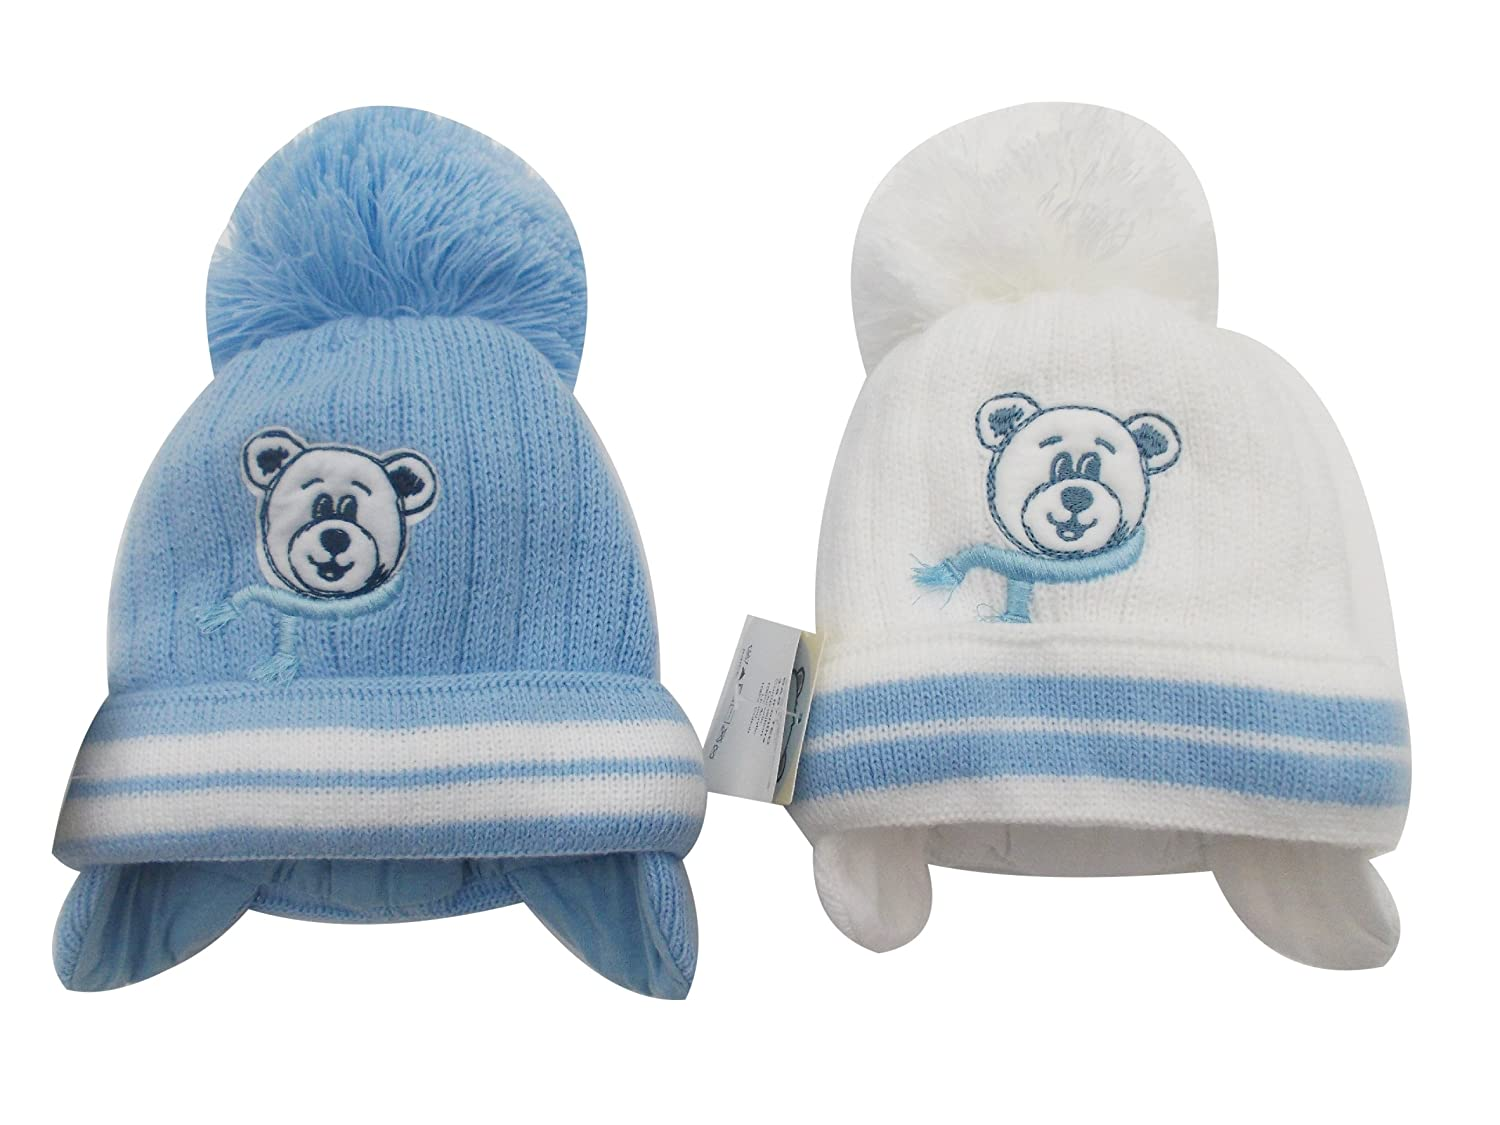 BNWT boys warm winter little ted bobble hat in blue or white 0-3 3-6 Months (3-6 months, White) Barbarac